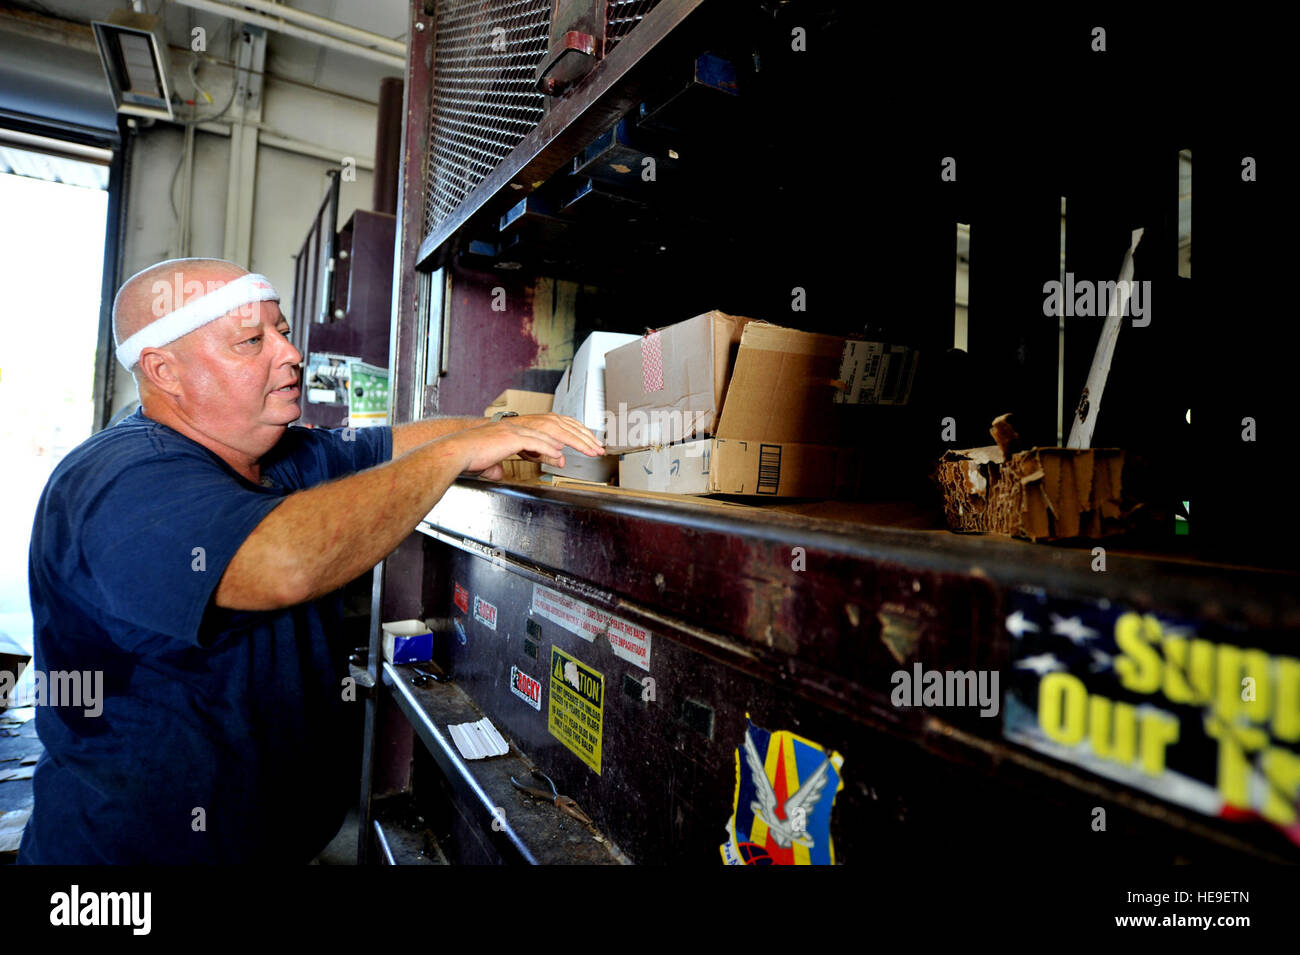 Scott Hallas, 1st Special Operations Civil Engineer Squadron, rearranges recyclables in a compactor at the recycling - Stock Image